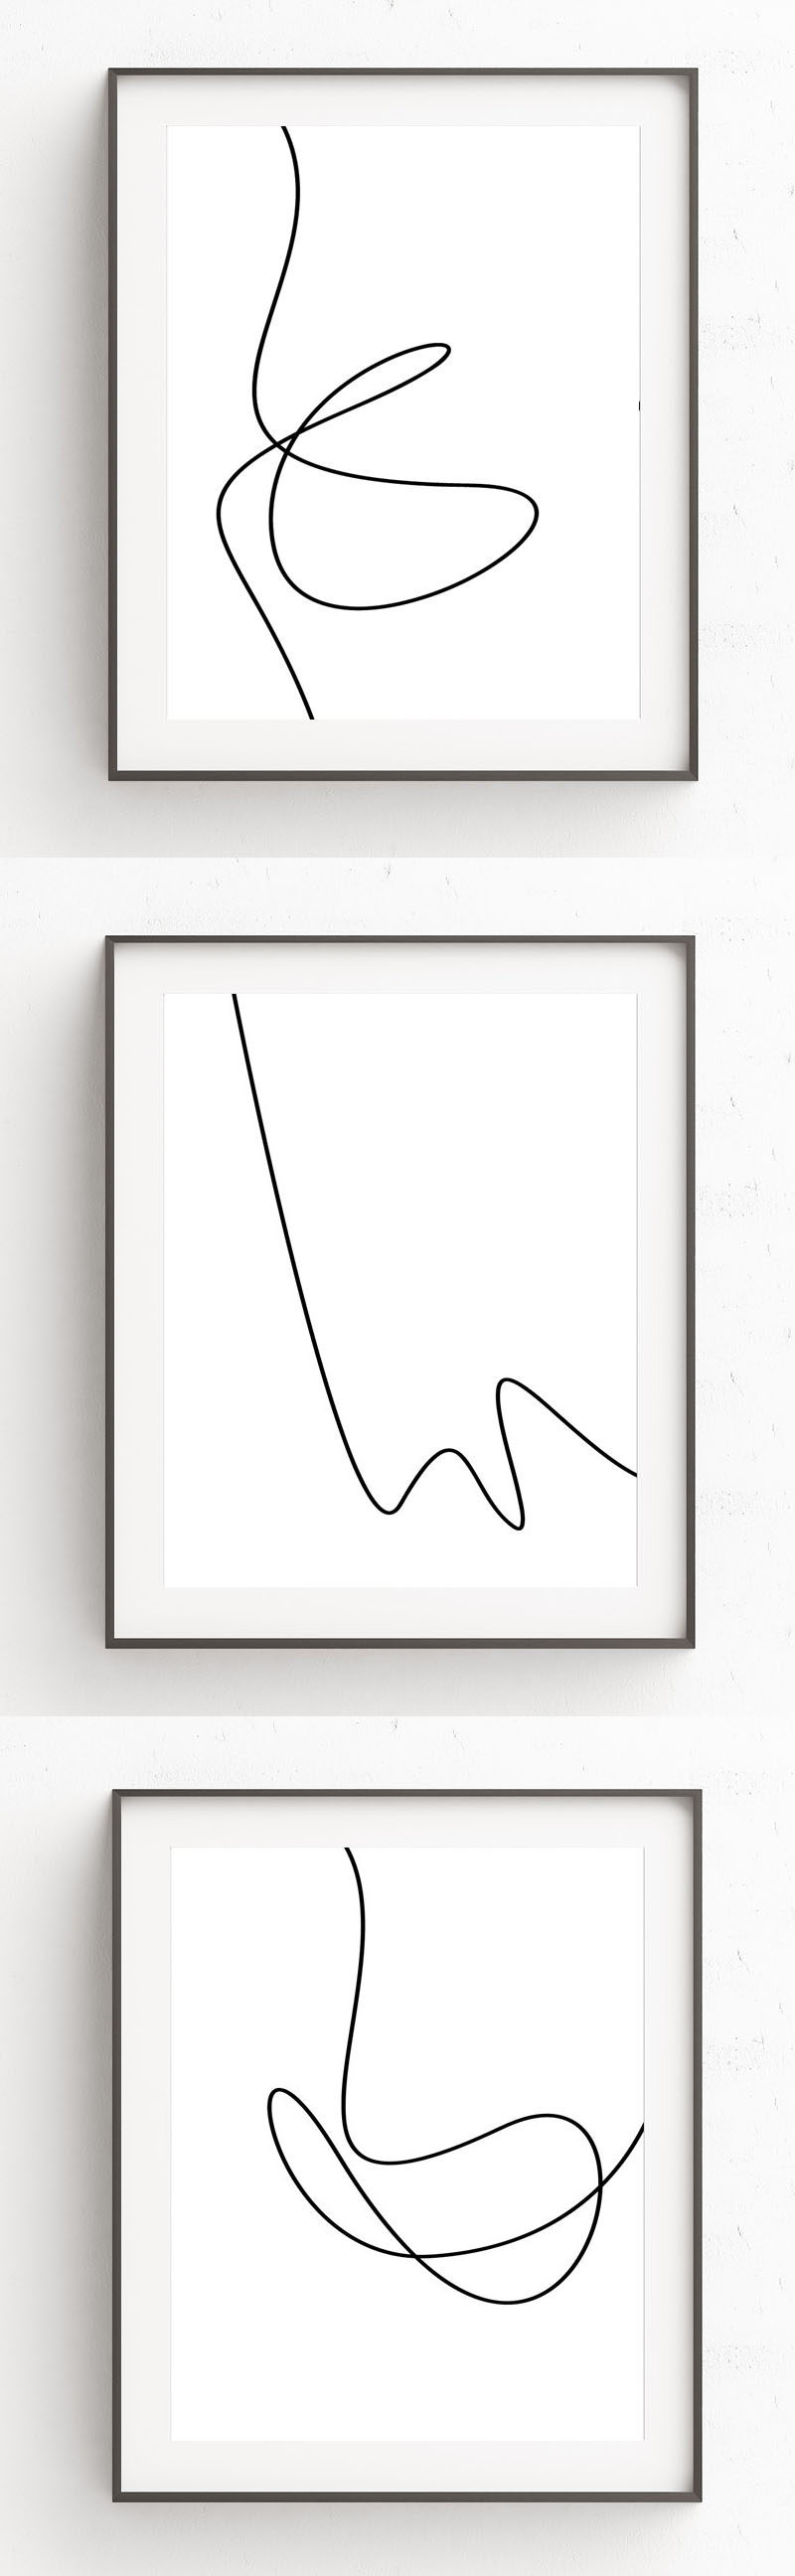 Minimalist line art prints are a simple way to decorate for Minimalist art design